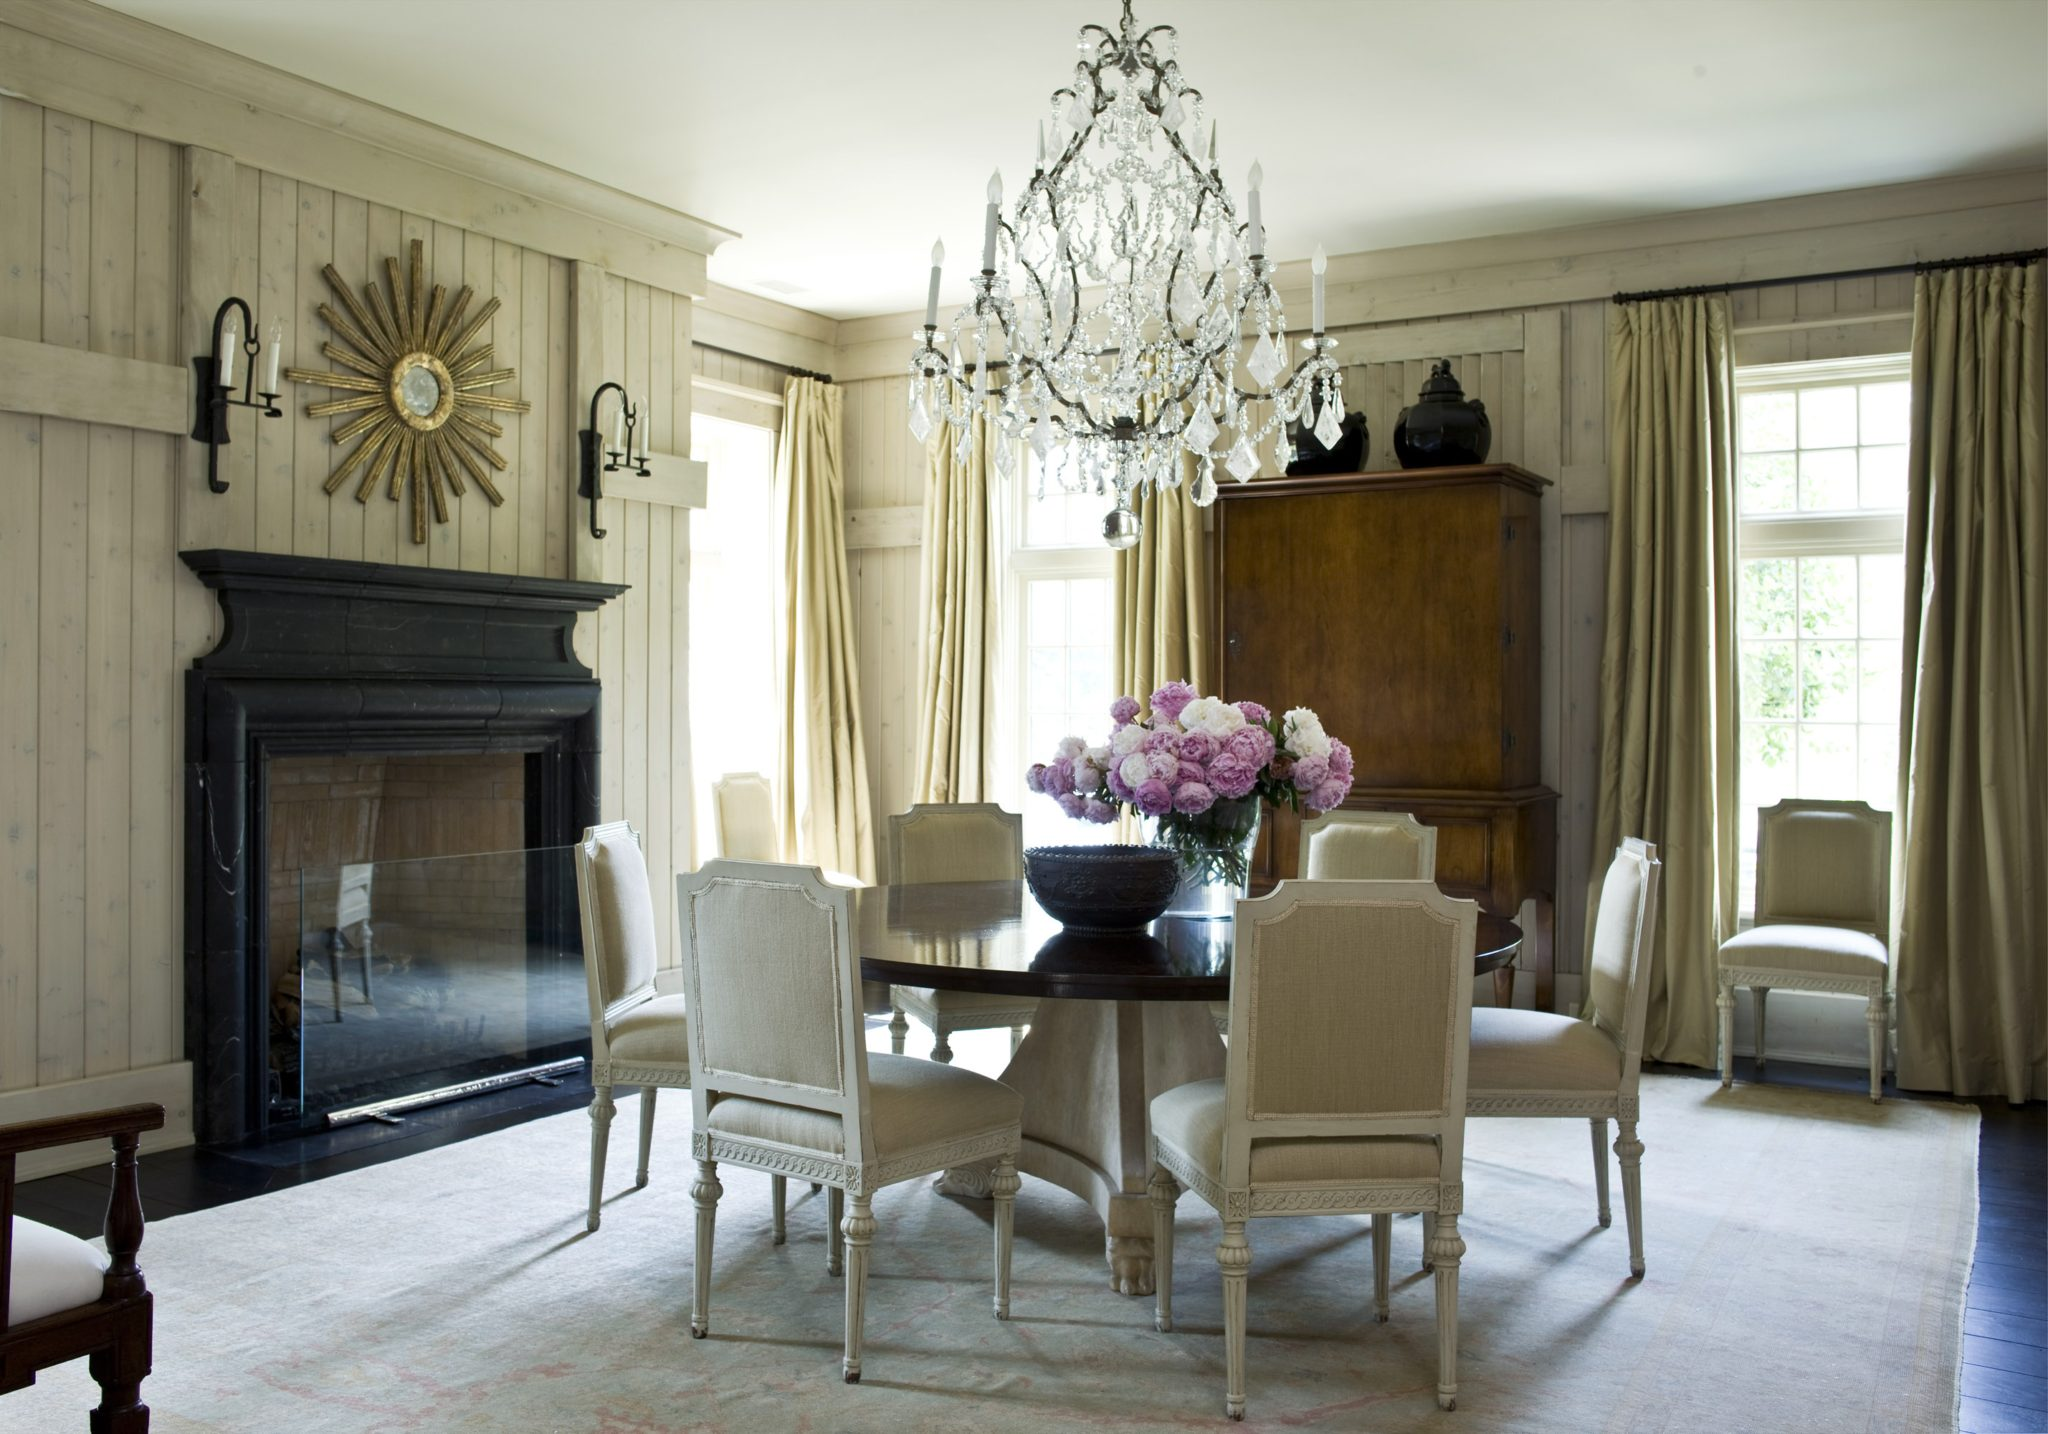 Authentic dining room with paneled walls by Suzanne Kasler Interiors